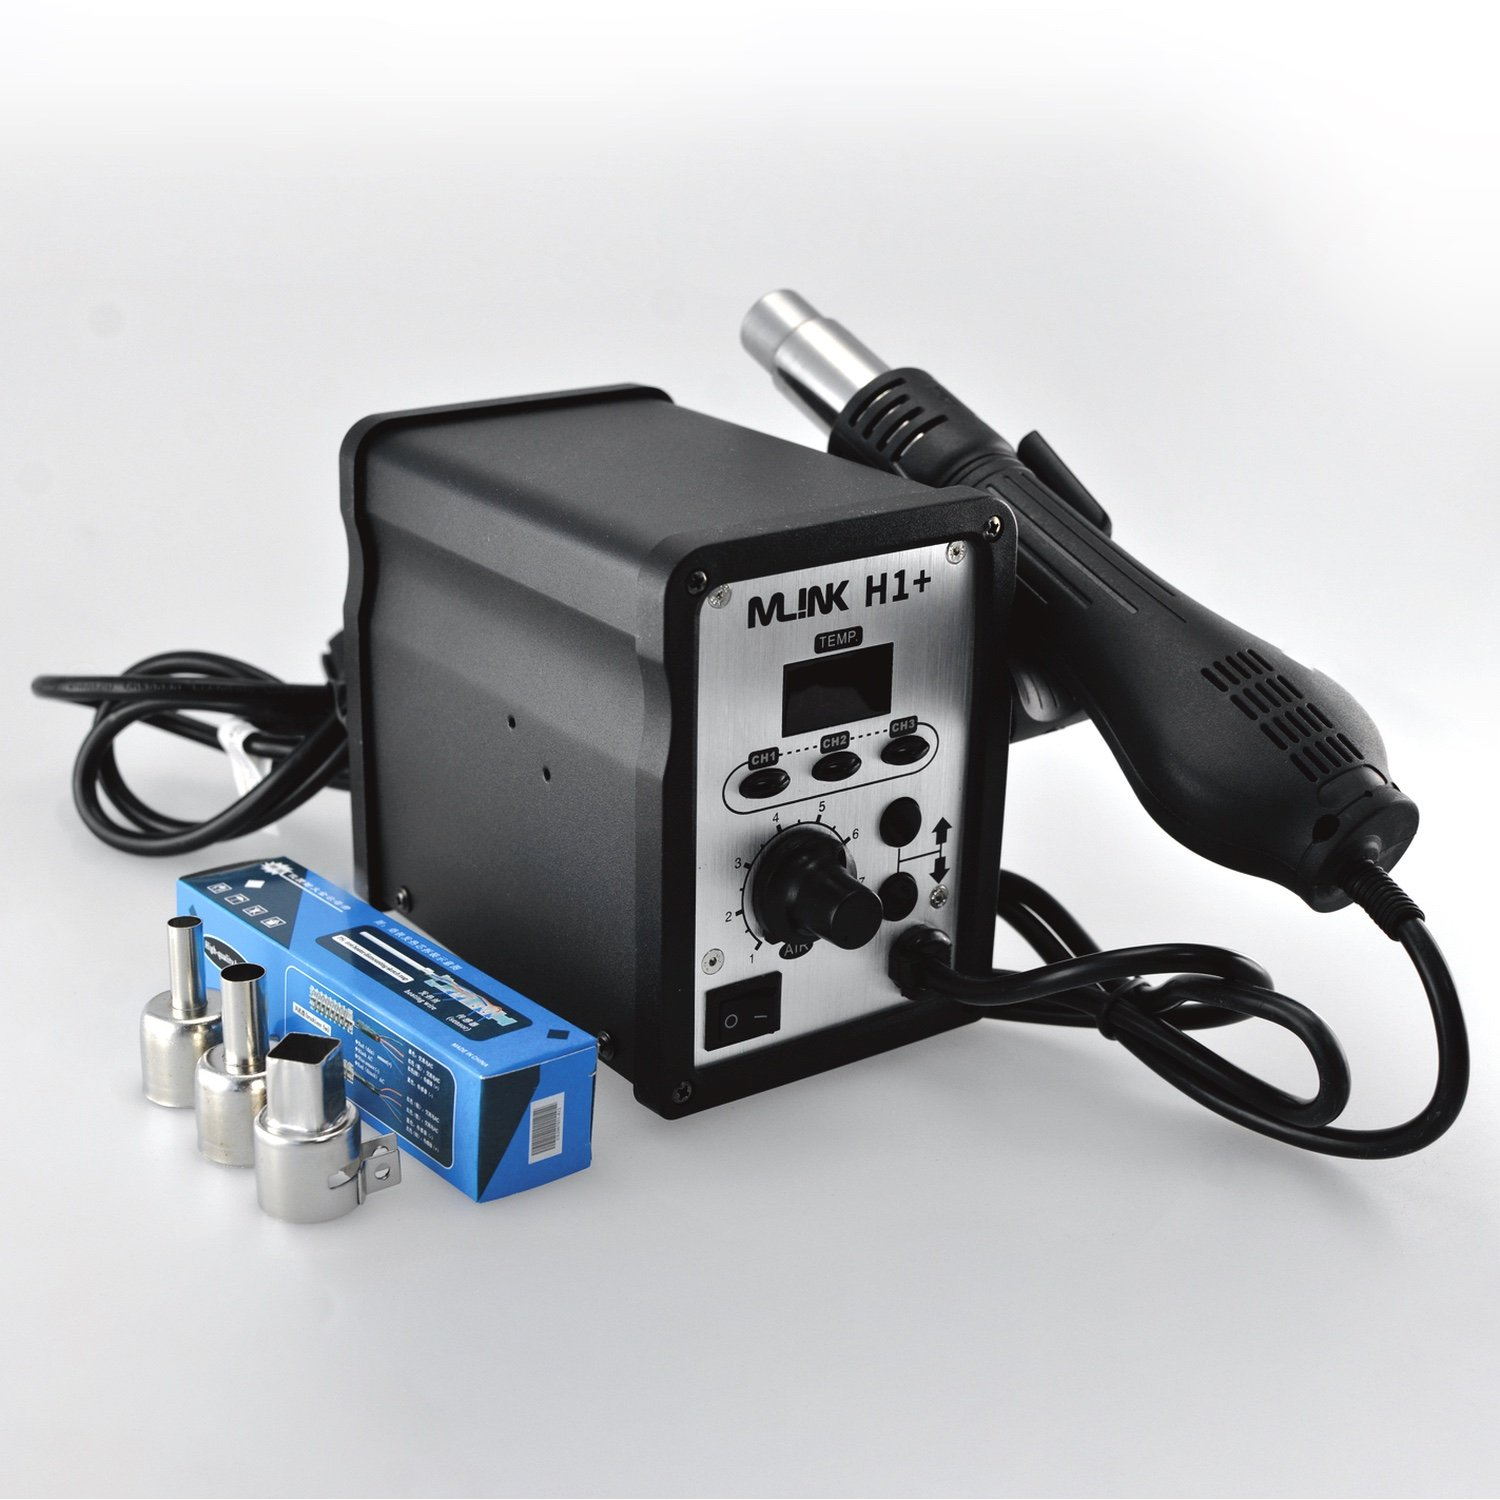 Soldering Station Hot Air MLINK H1 + Digital Checkpoint And Memories